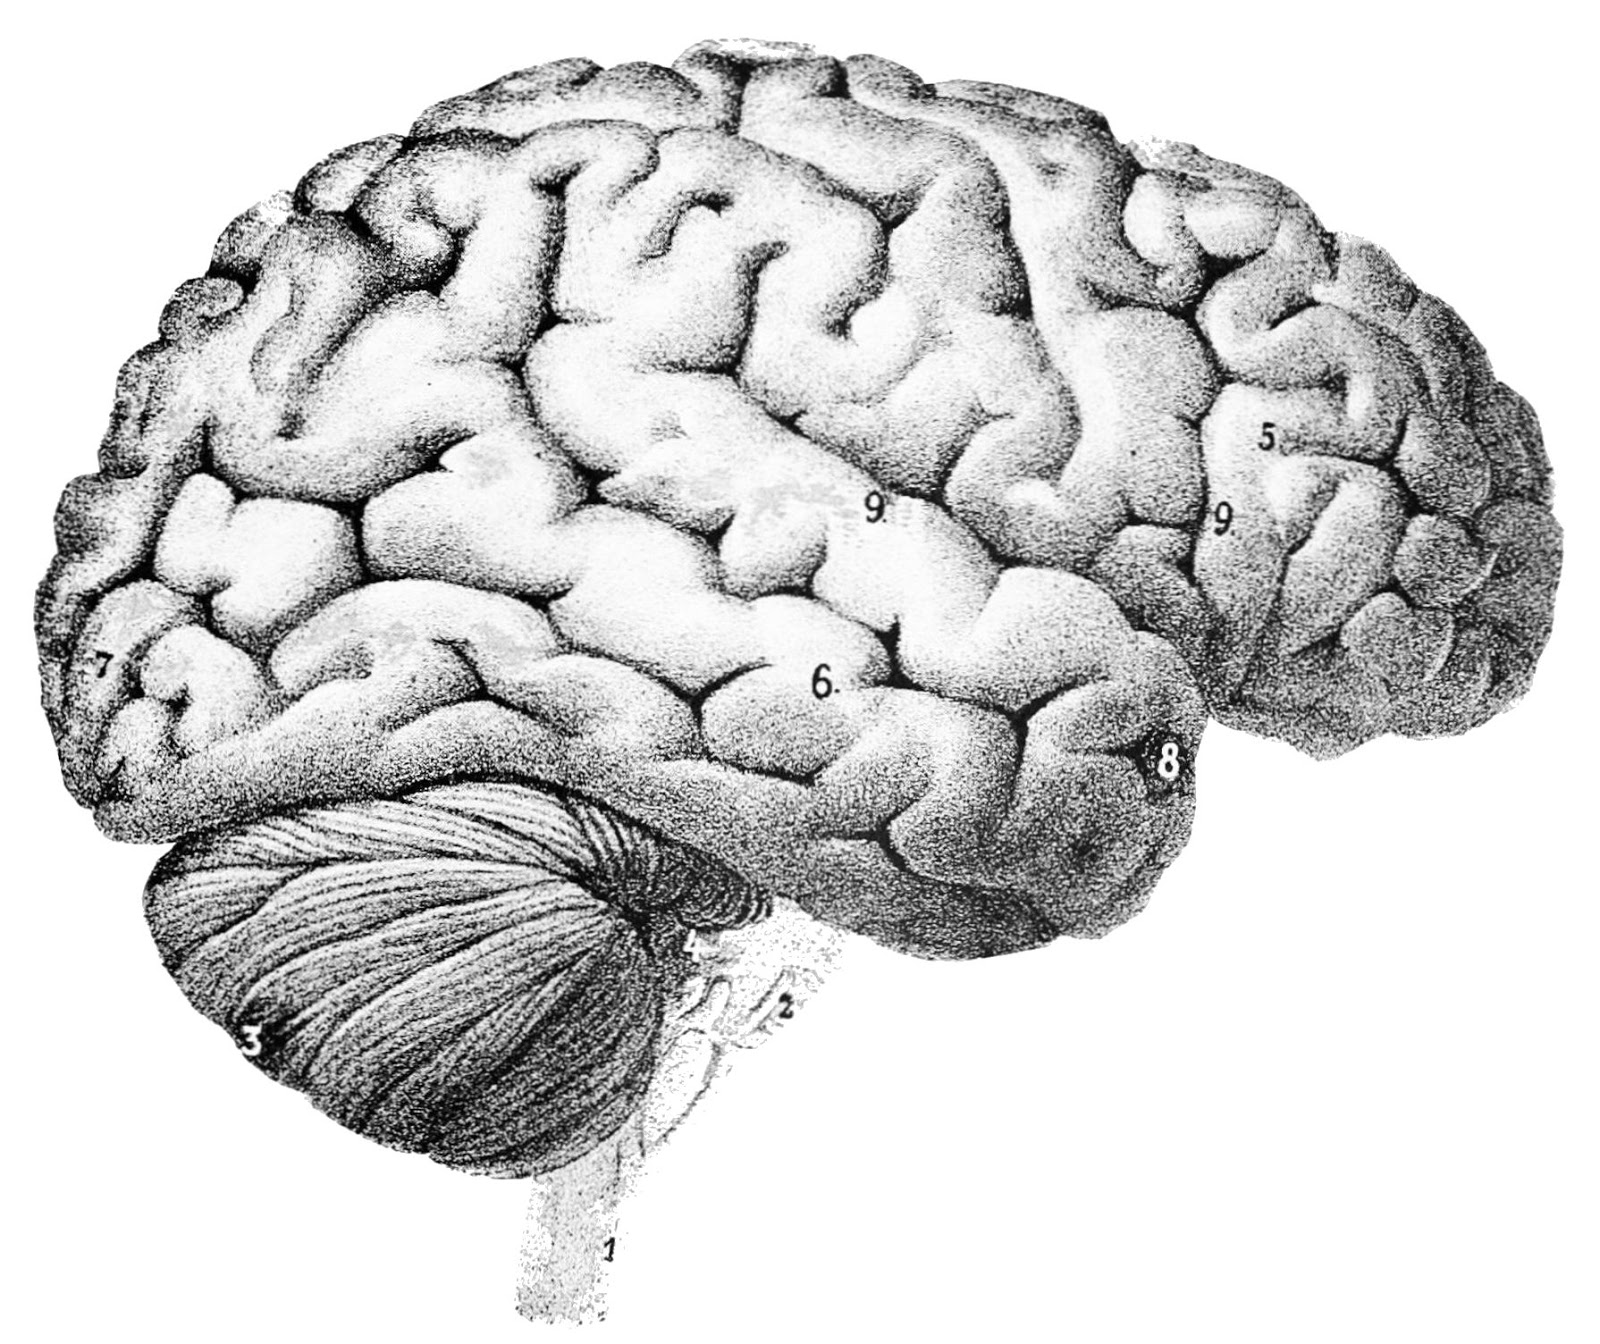 A man without 90 brains has put scientists into a stupor